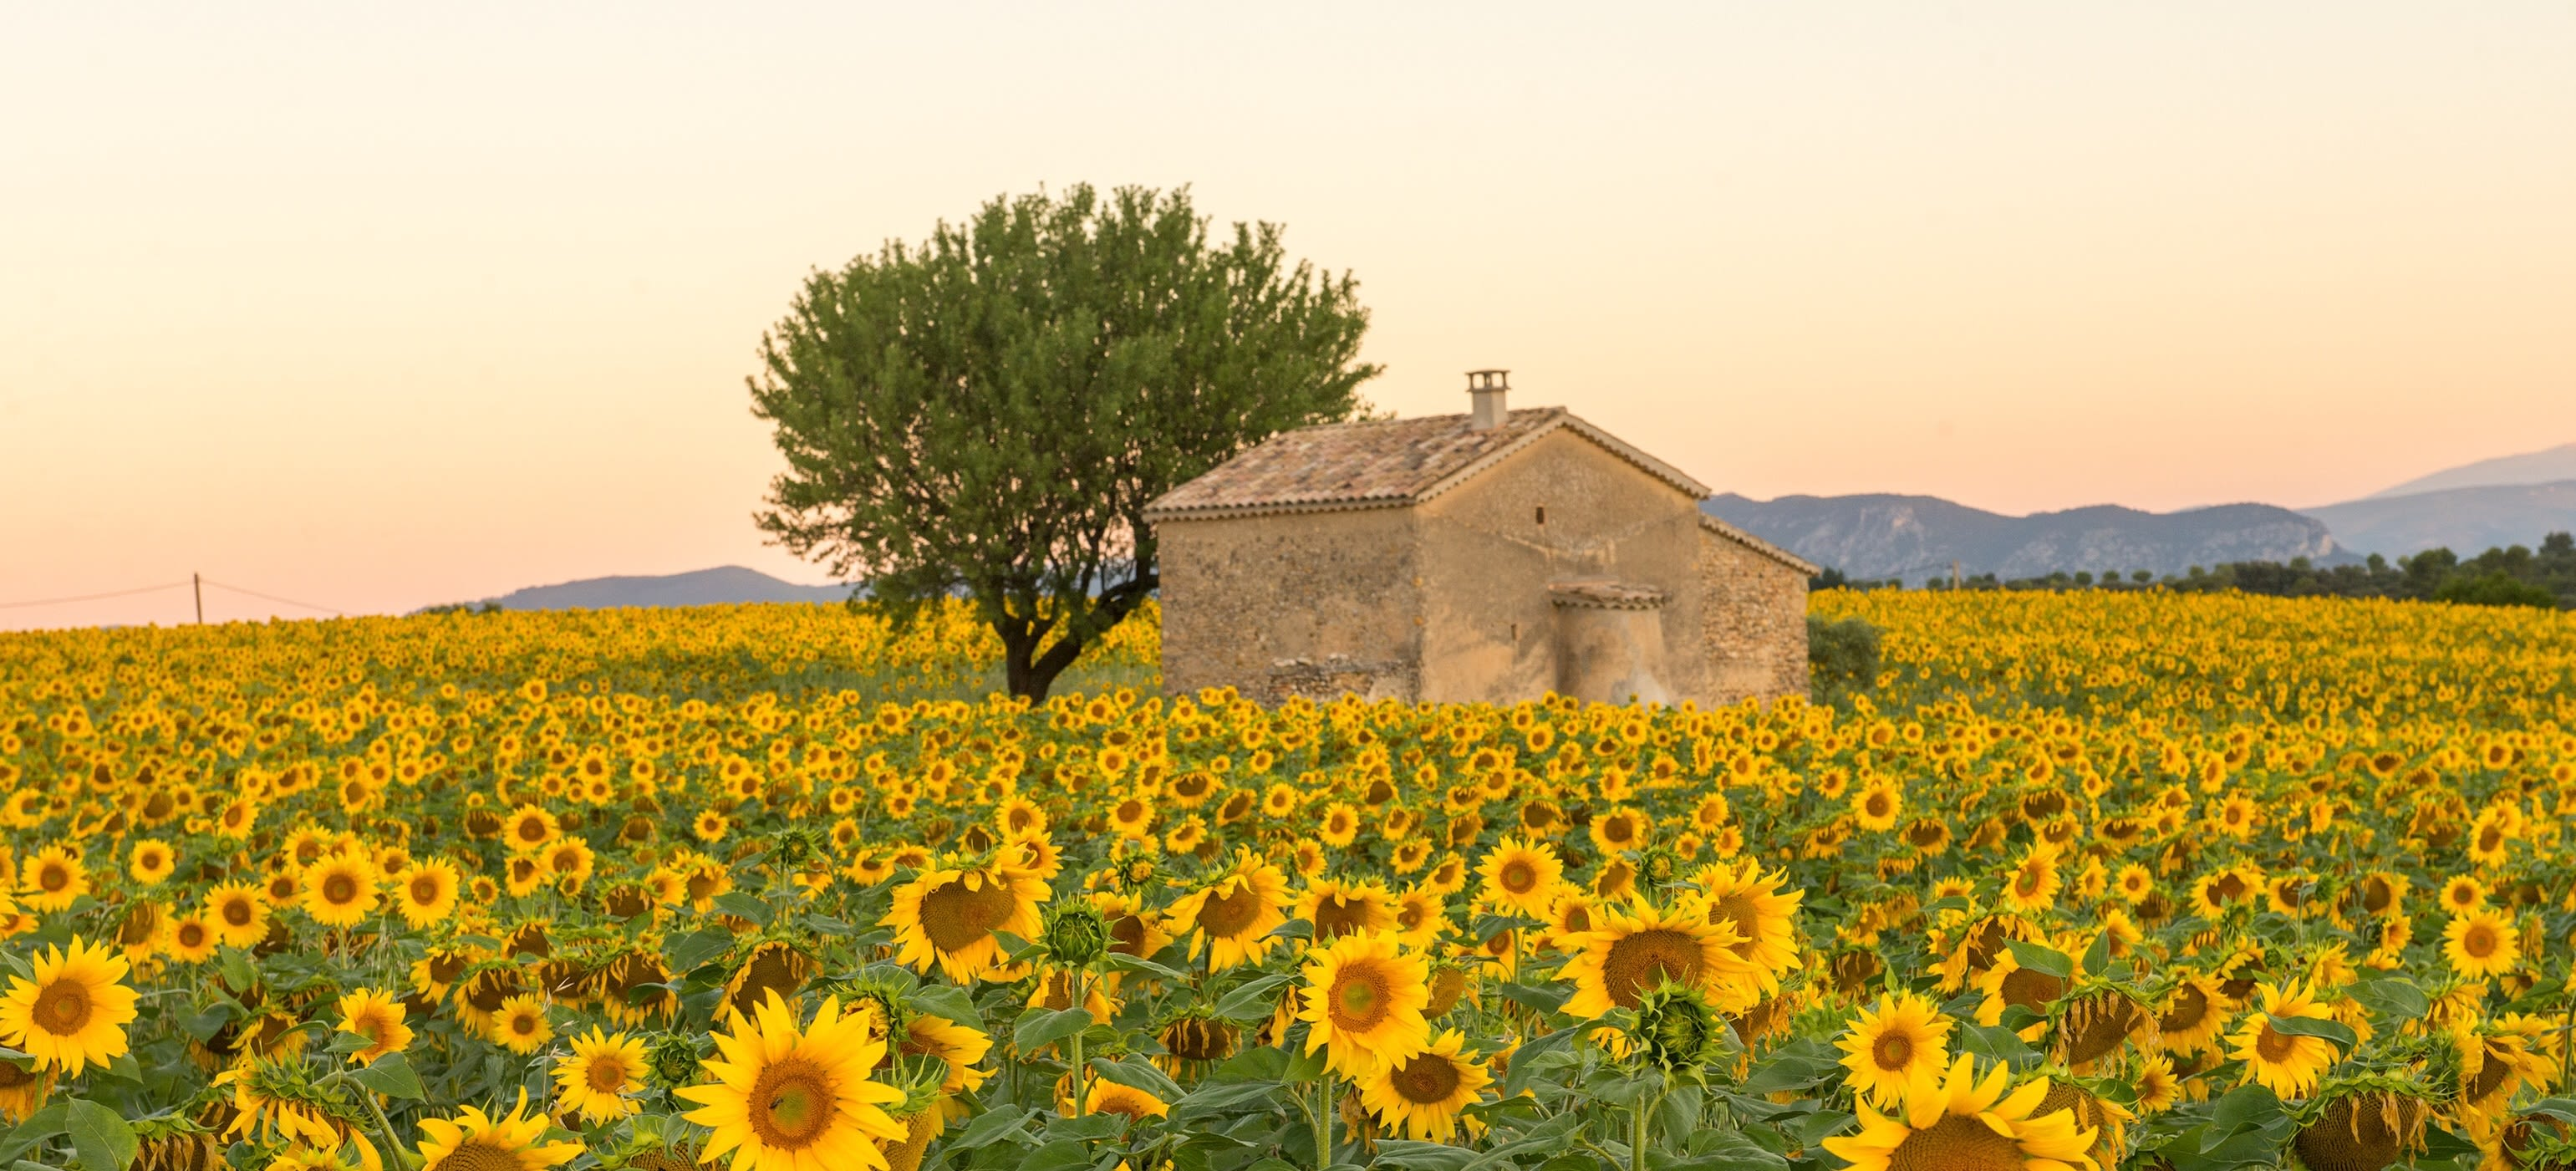 Enchanting Travels France Tours A field of sunflowers surround an old building in Provence, France - Best time to visit France